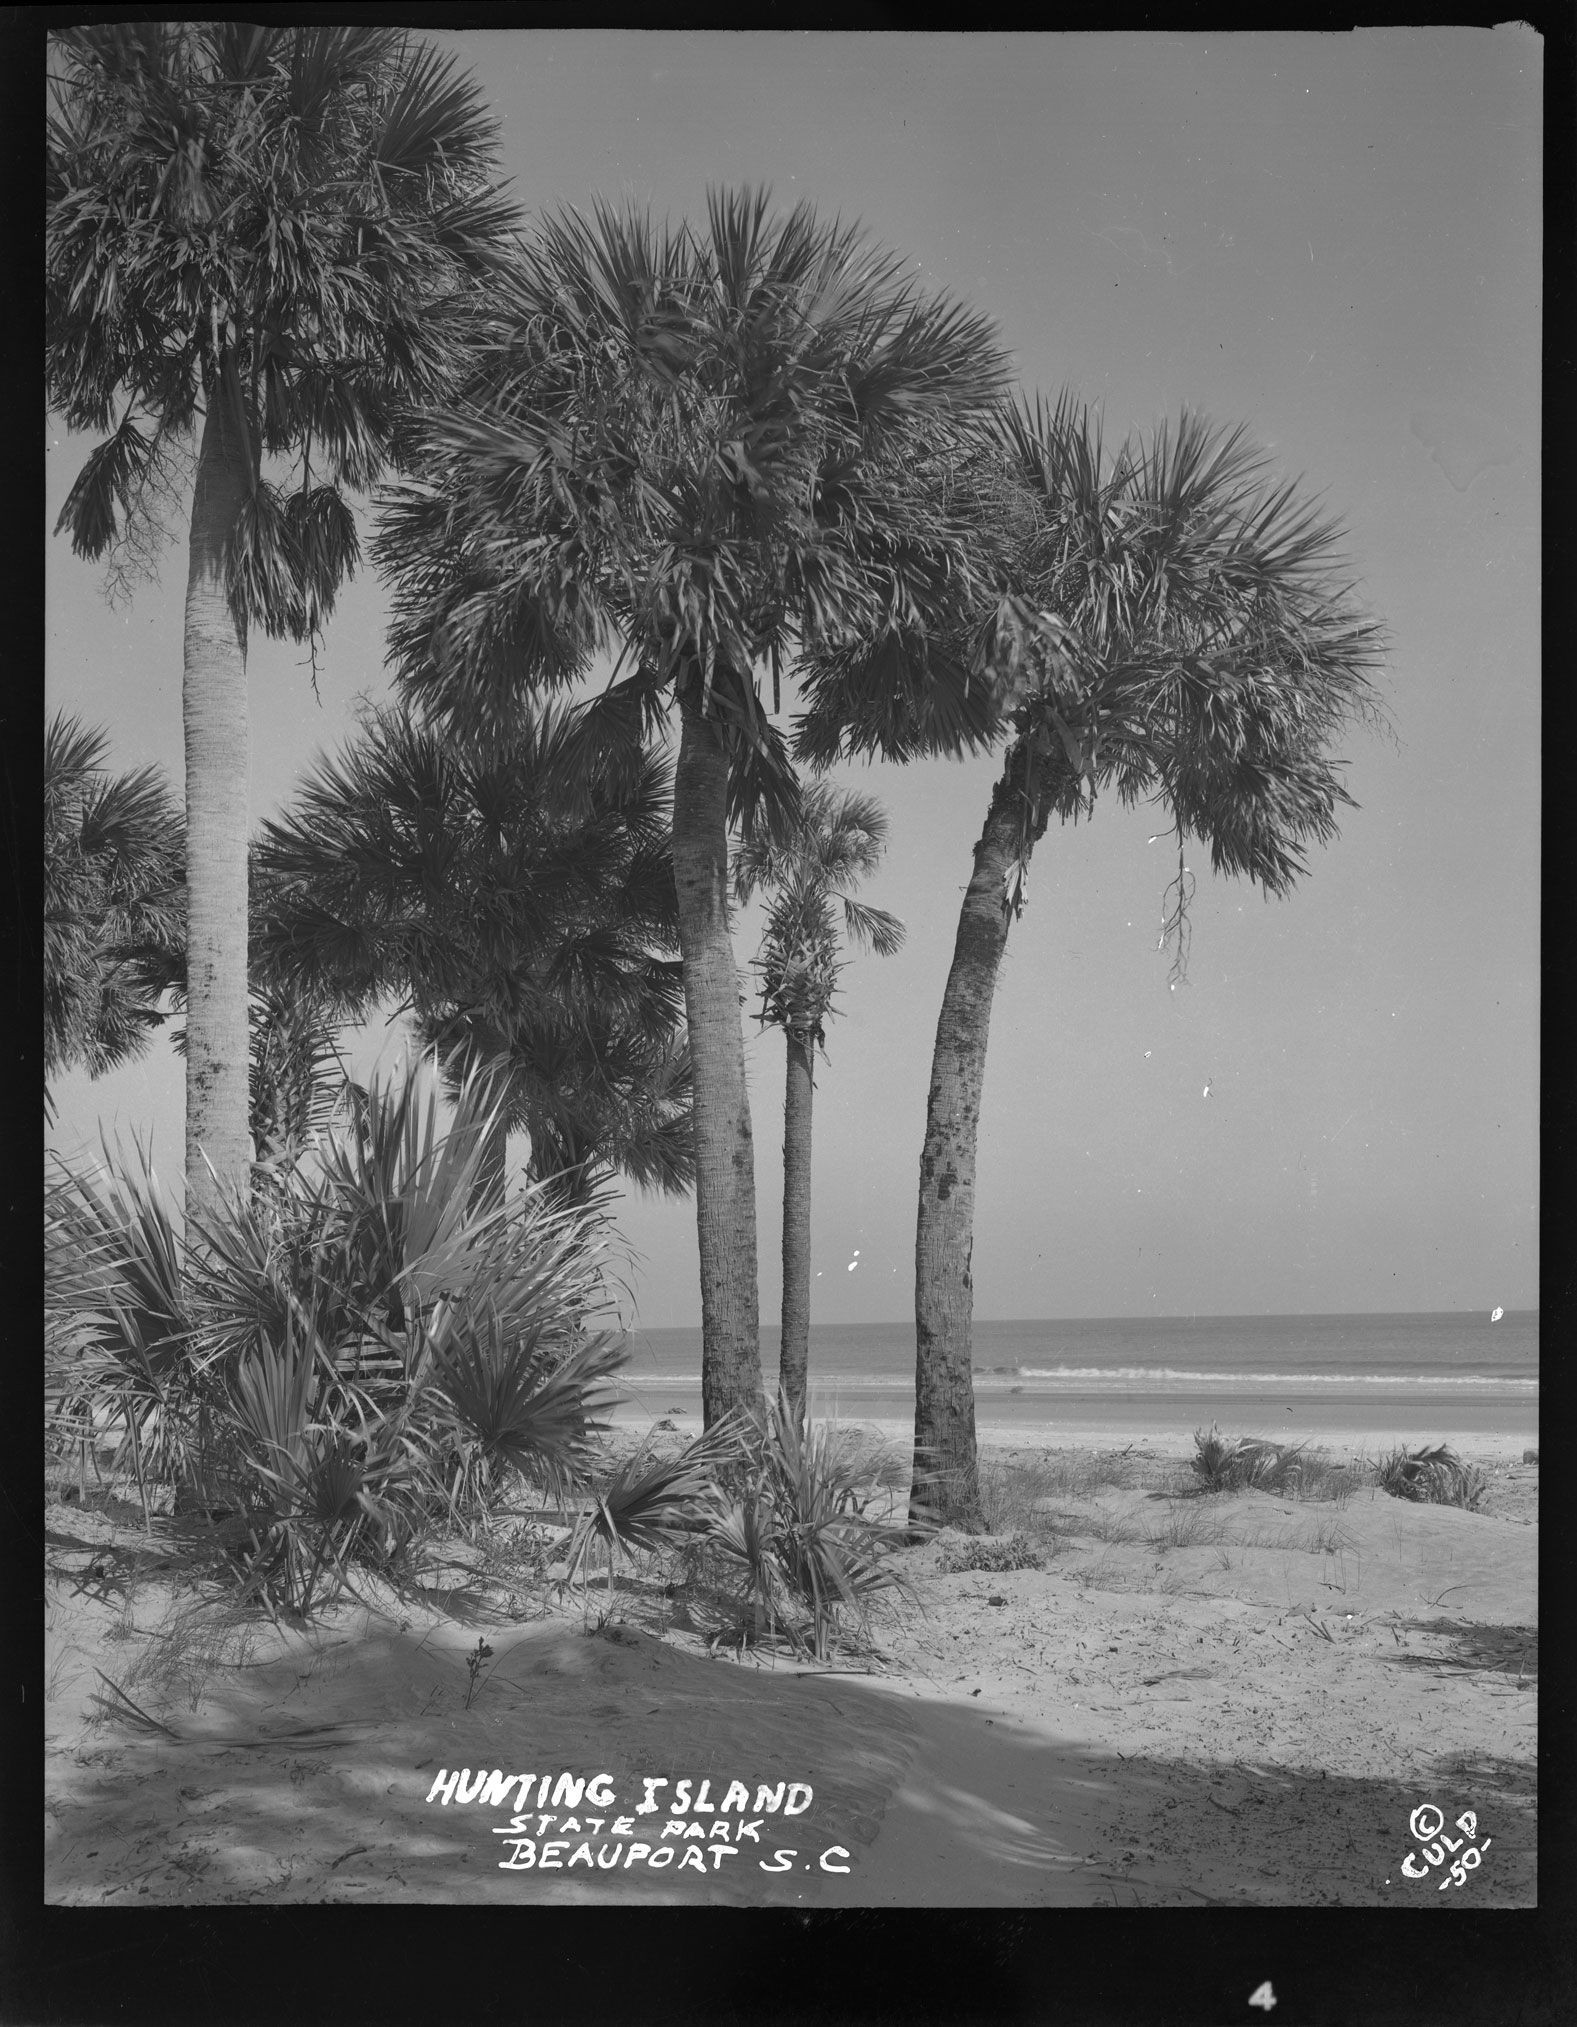 Cluster of palmetto trees at Hunting Island State Park, Beaufort S.C.